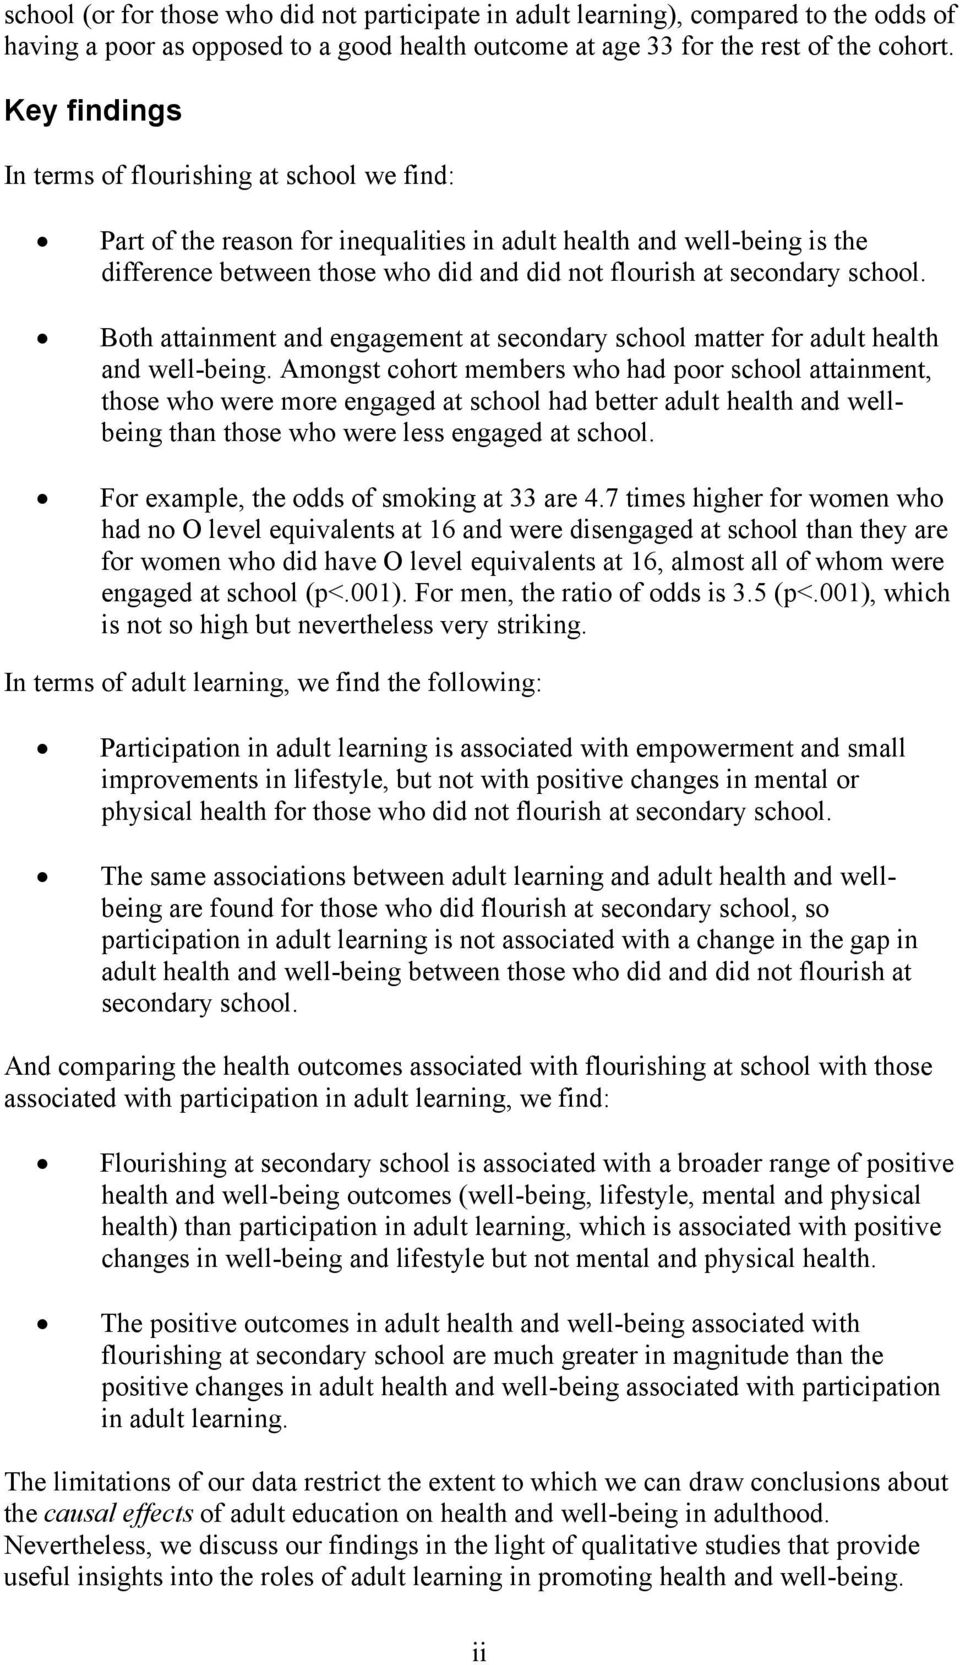 school. Both attainment and engagement at secondary school matter for adult health and well-being.